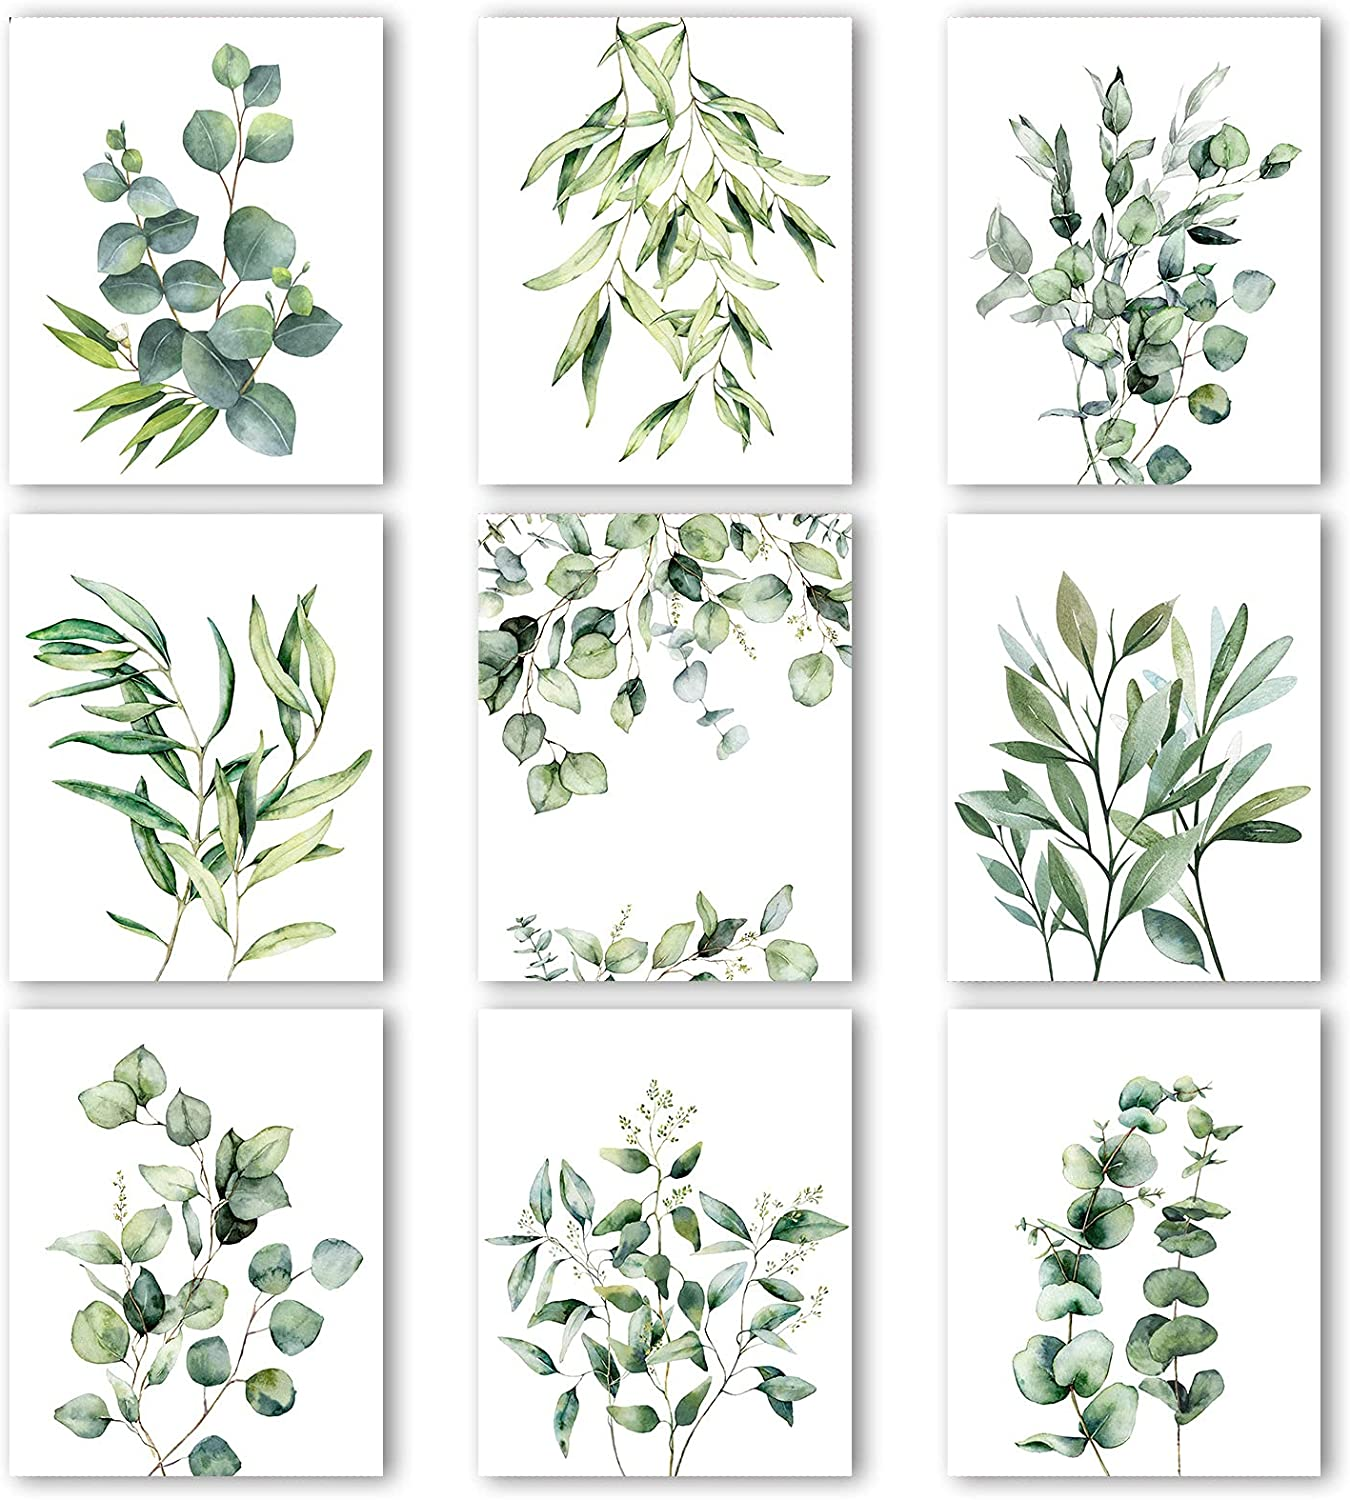 9 Pieces Eucalyptus Prints Botanical Plant Wall Art Prints Green Leaves Watercolor Wall Posters Boho Wall Decor Minimalist Wall Art for Farmhouse Living Room Bedroom Kitchen (8 x 10 Inch, Unframed)